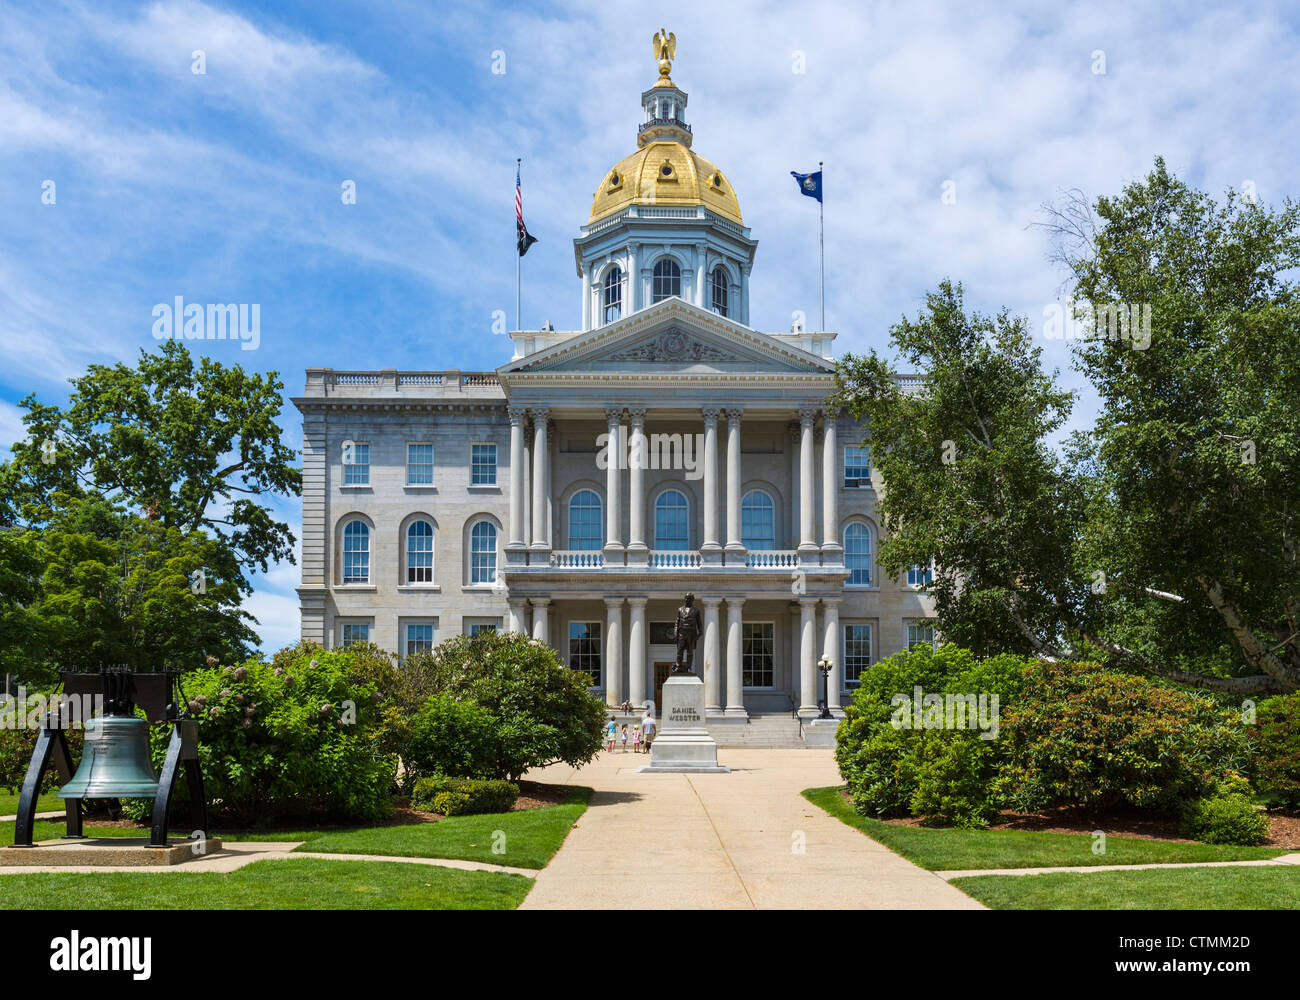 New Hampshire State House, Main Street, Concord, New Hampshire, USA - Stock Image